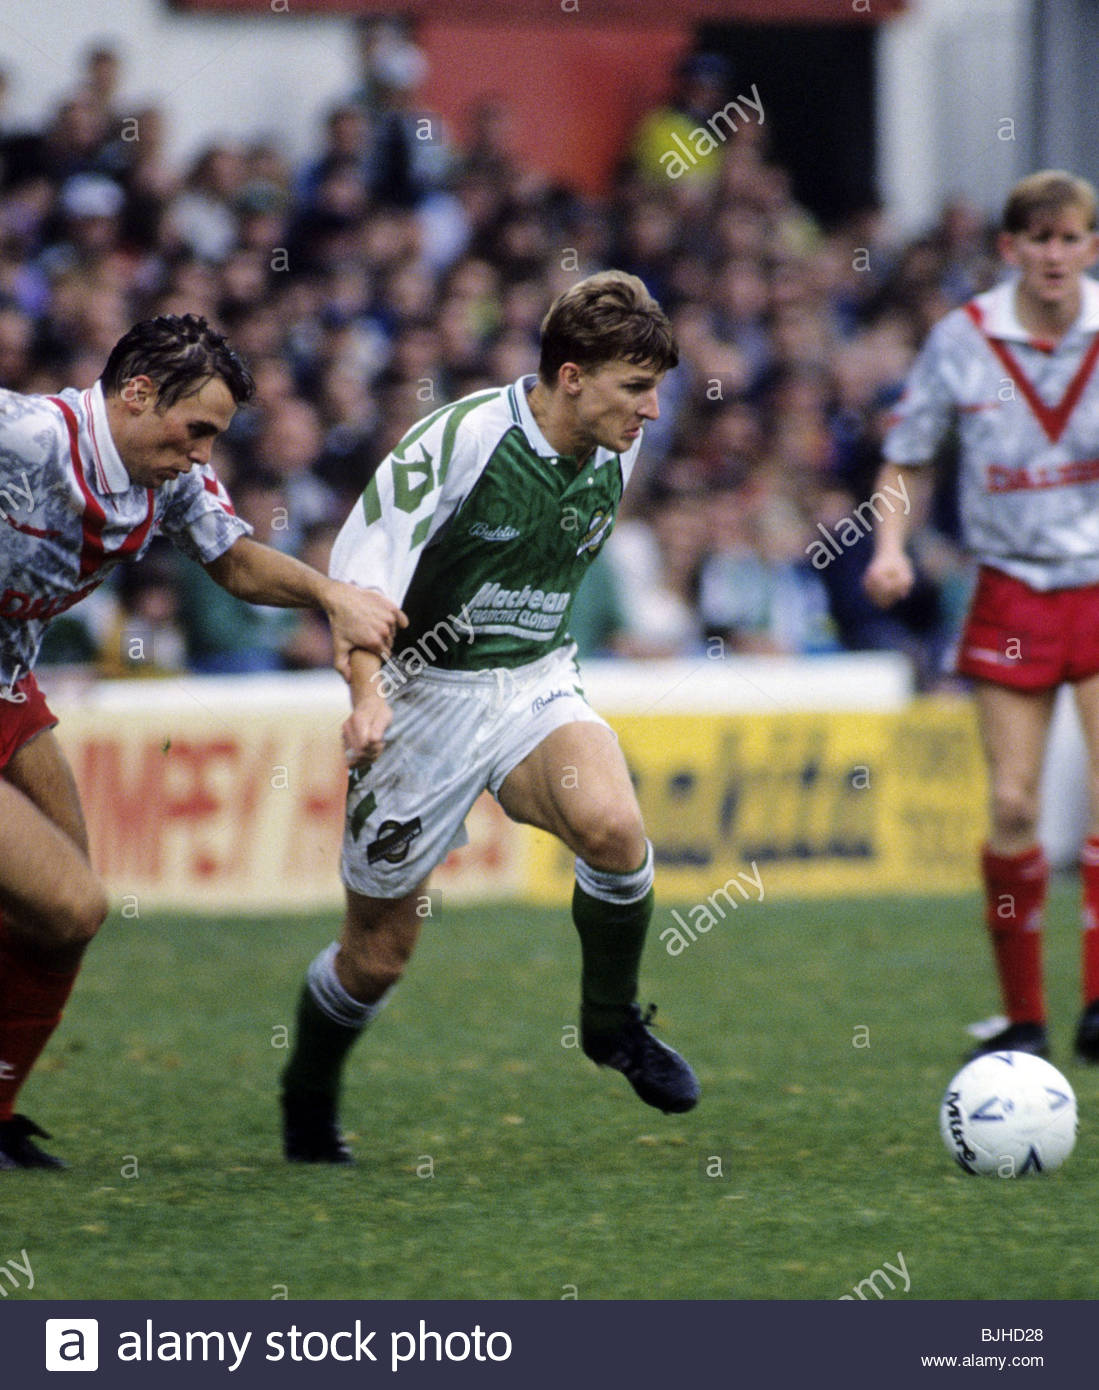 SEASON 1992/1993 PREMIER DIVISION HIBS V AIRDRIE (2-2) EASTER ROAD - EDINBURGH Gareth Evans attempts to escape the - Stock Image